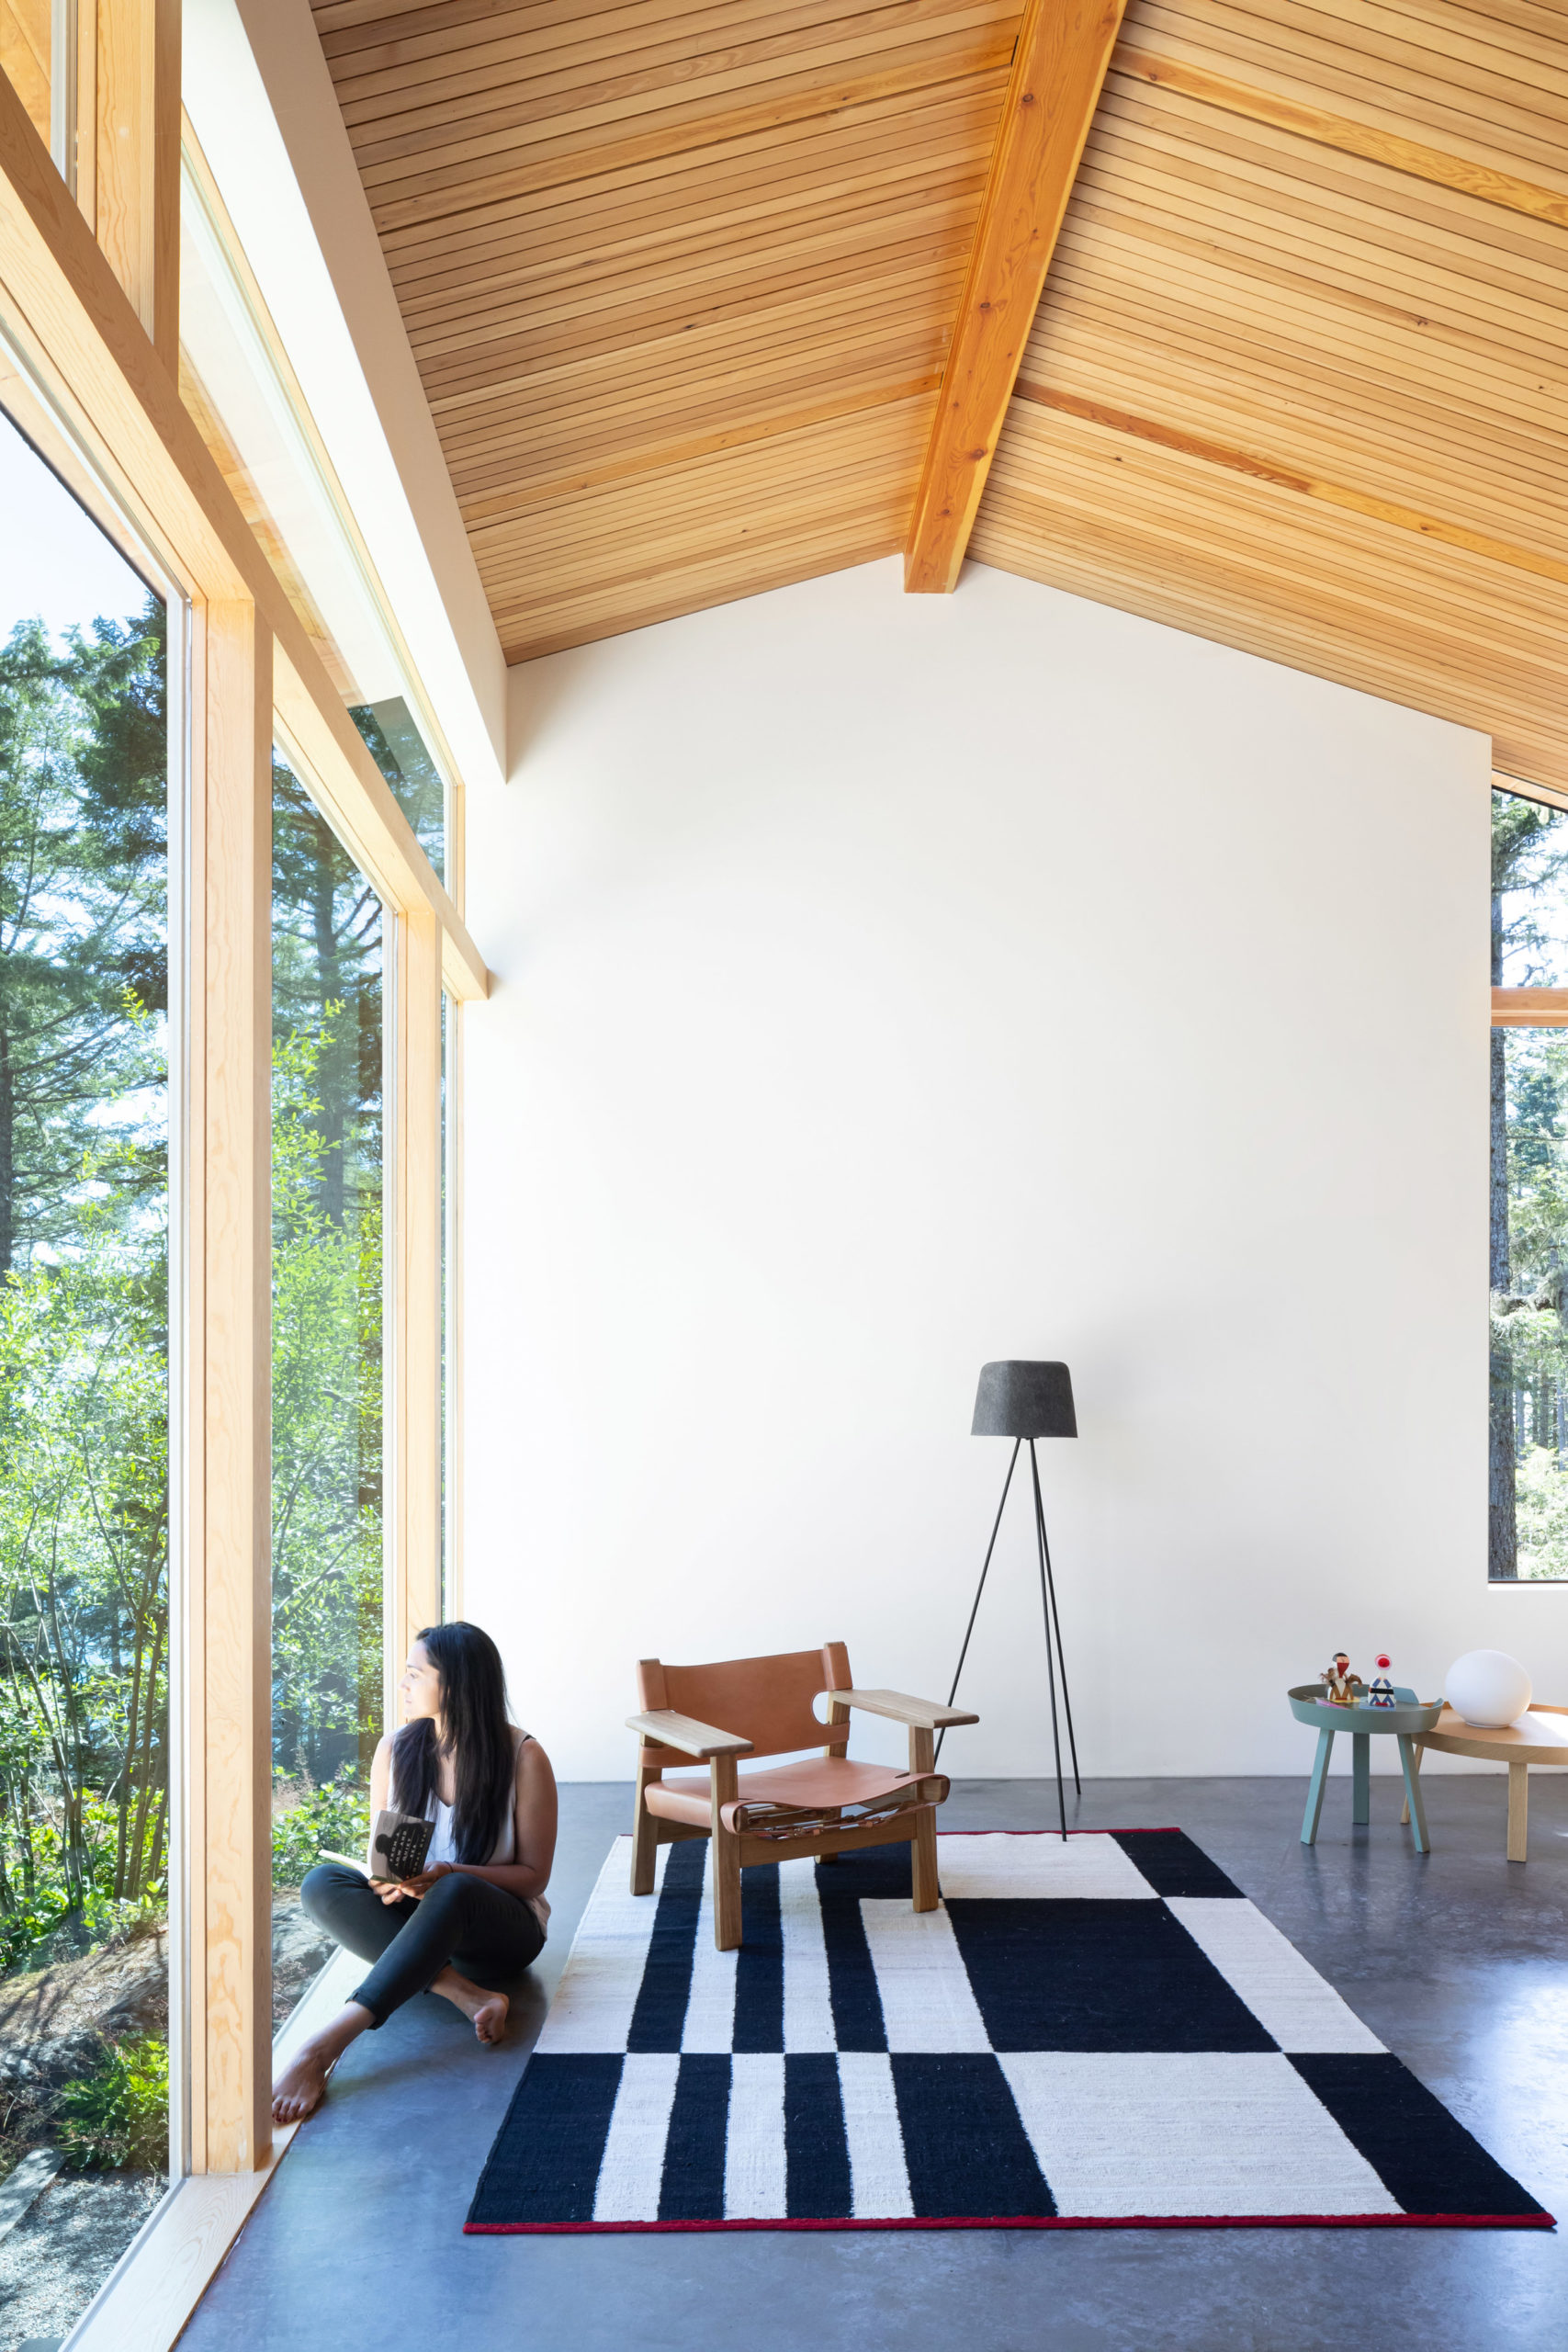 Most the of the walls inside the house are white which looks very clean and stylish in combination with the wooden ceilings